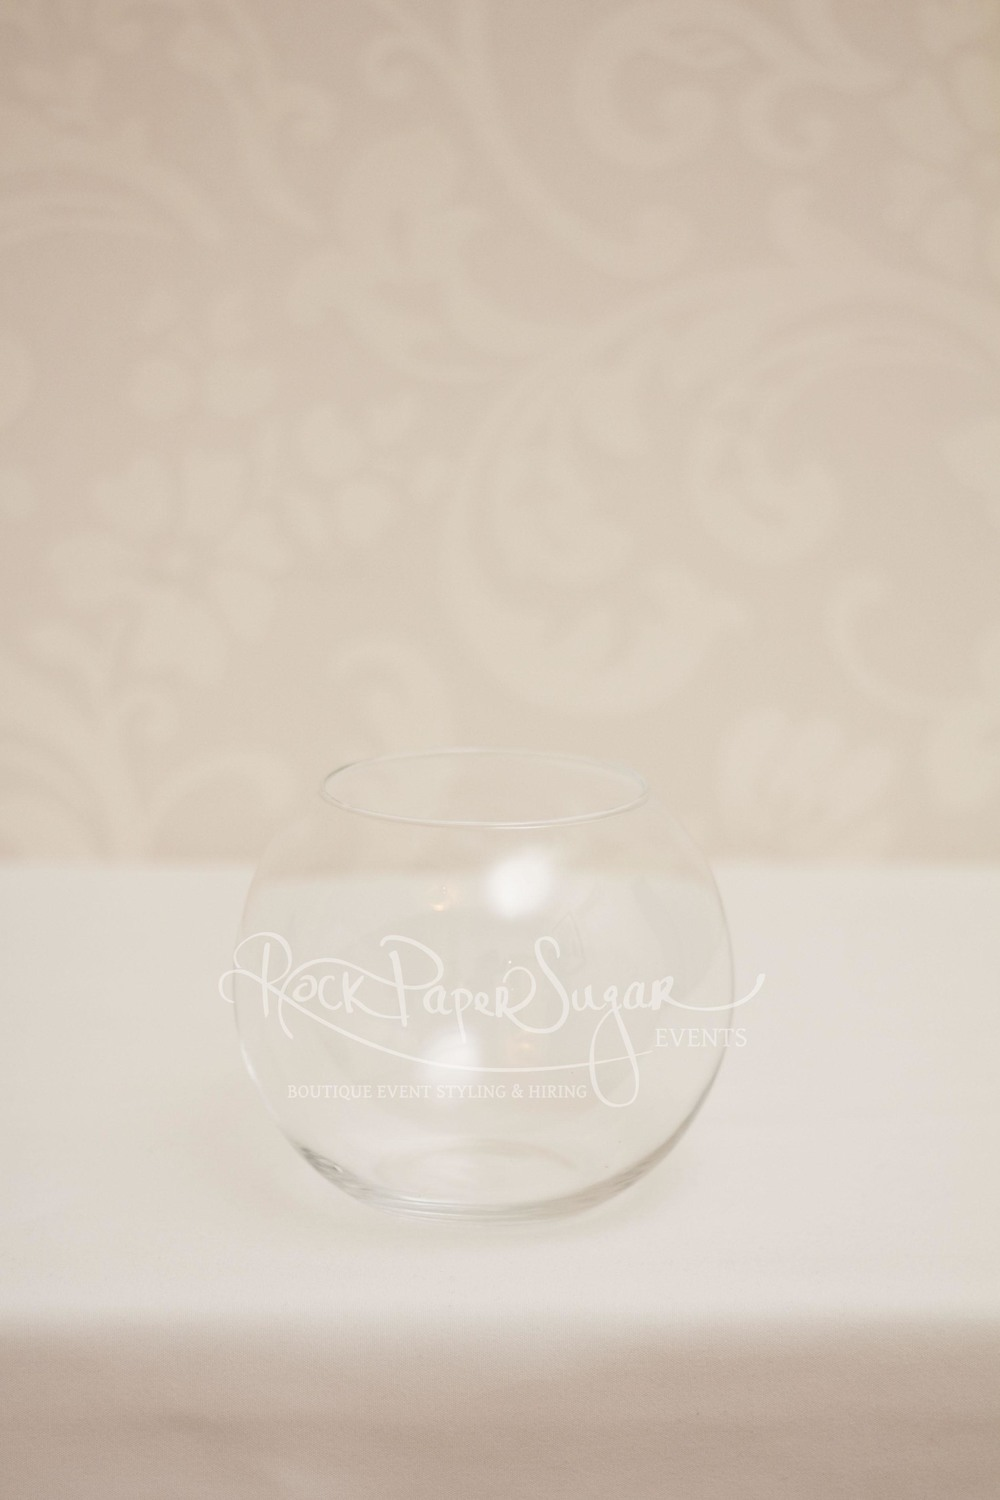 Rock Paper Sugar Events Glassware 012.jpg